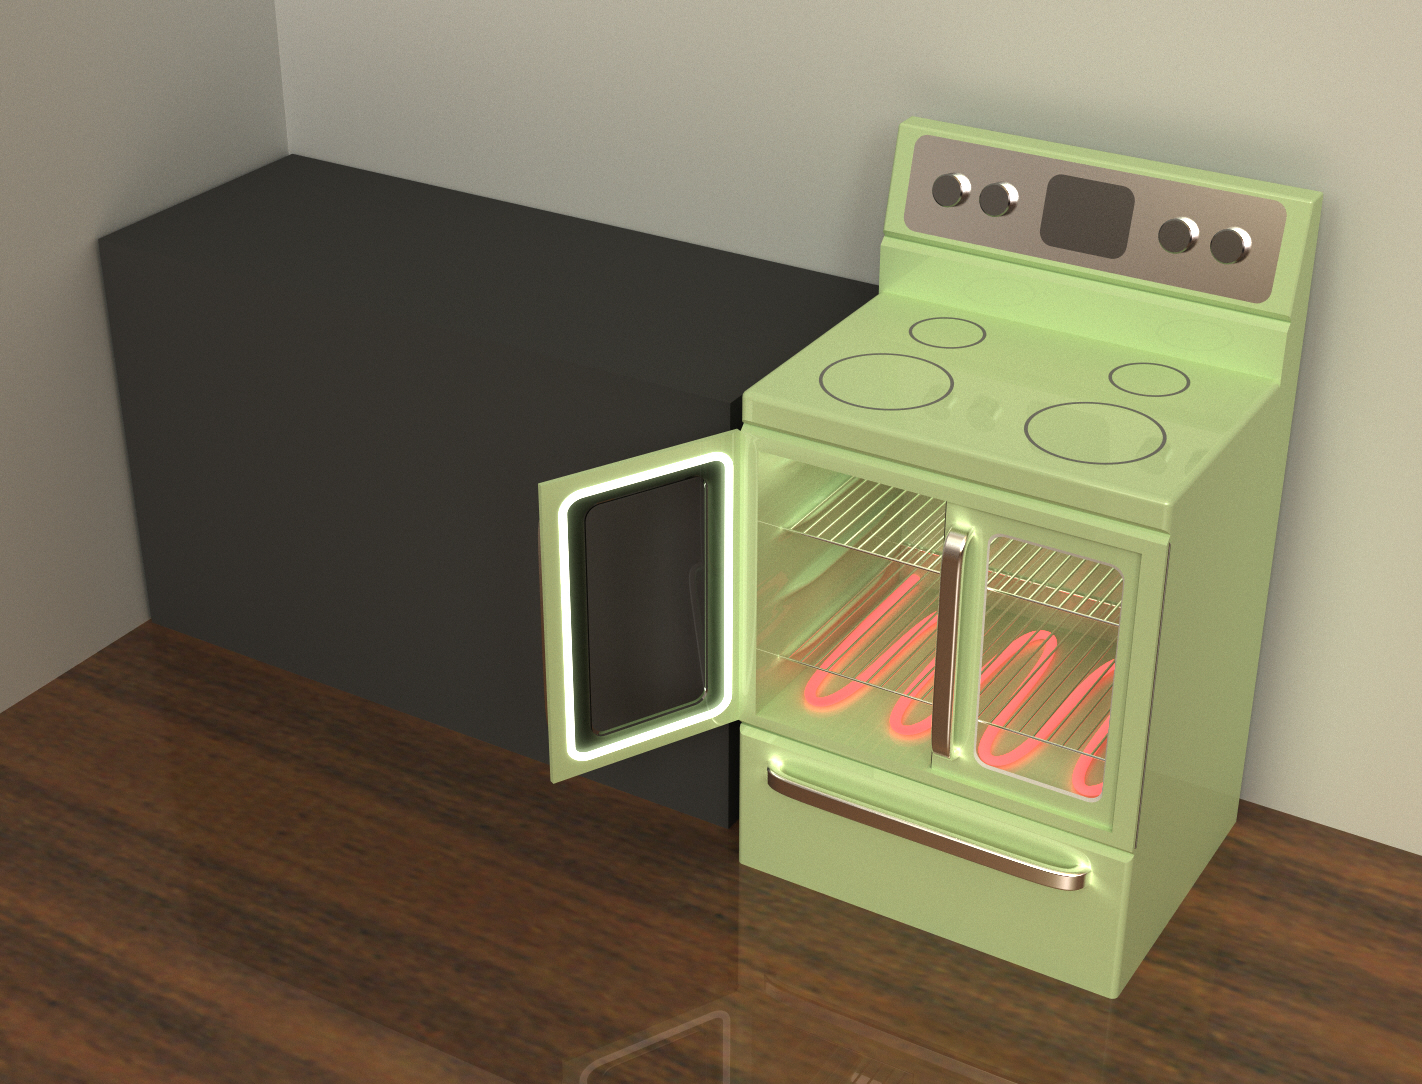 Stovetop French Oven Design Concept (2017)